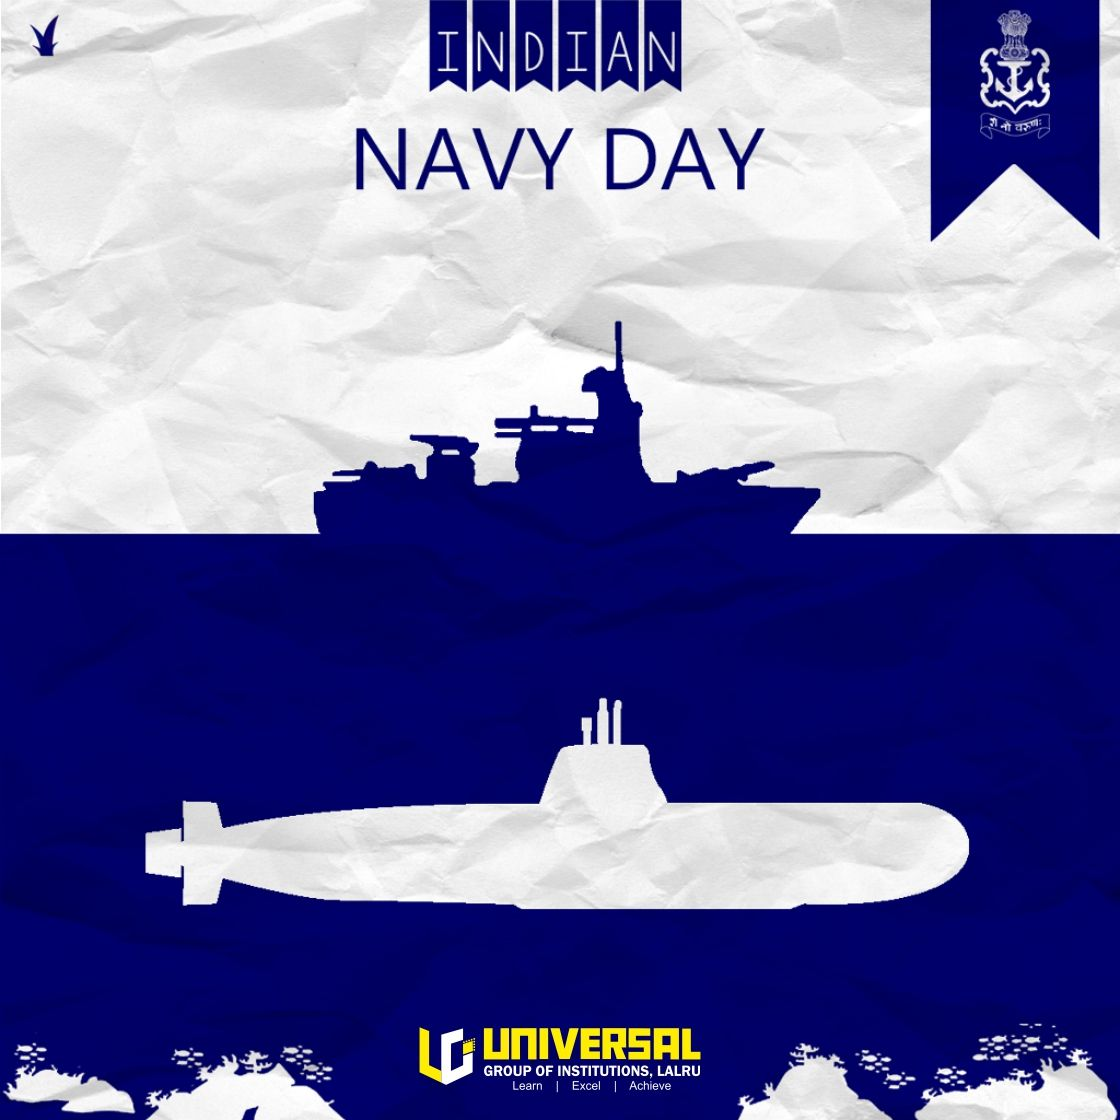 Ugi Joins Nation This Navy Day To Salute And Celebrate The 45th Anniversary Of The Indian Navy This 4 December In Order To Navy Day Indian Navy Day Indian Navy